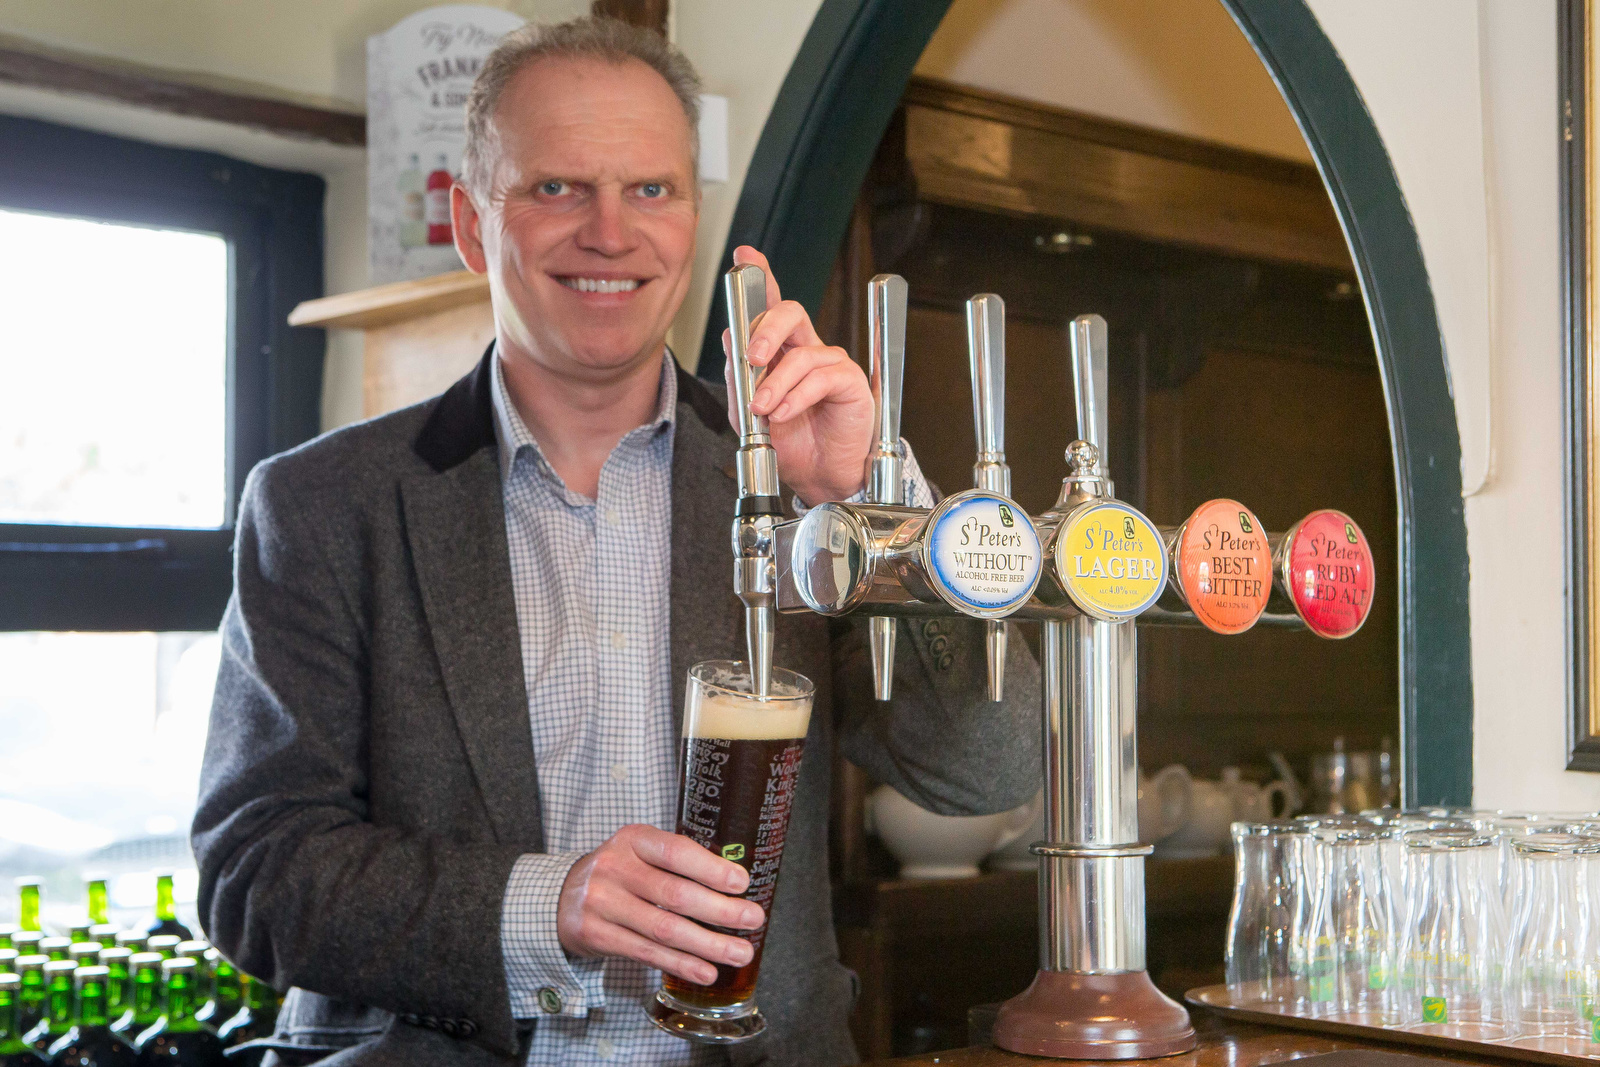 Weatherspoon's tap into St Peters Brewery